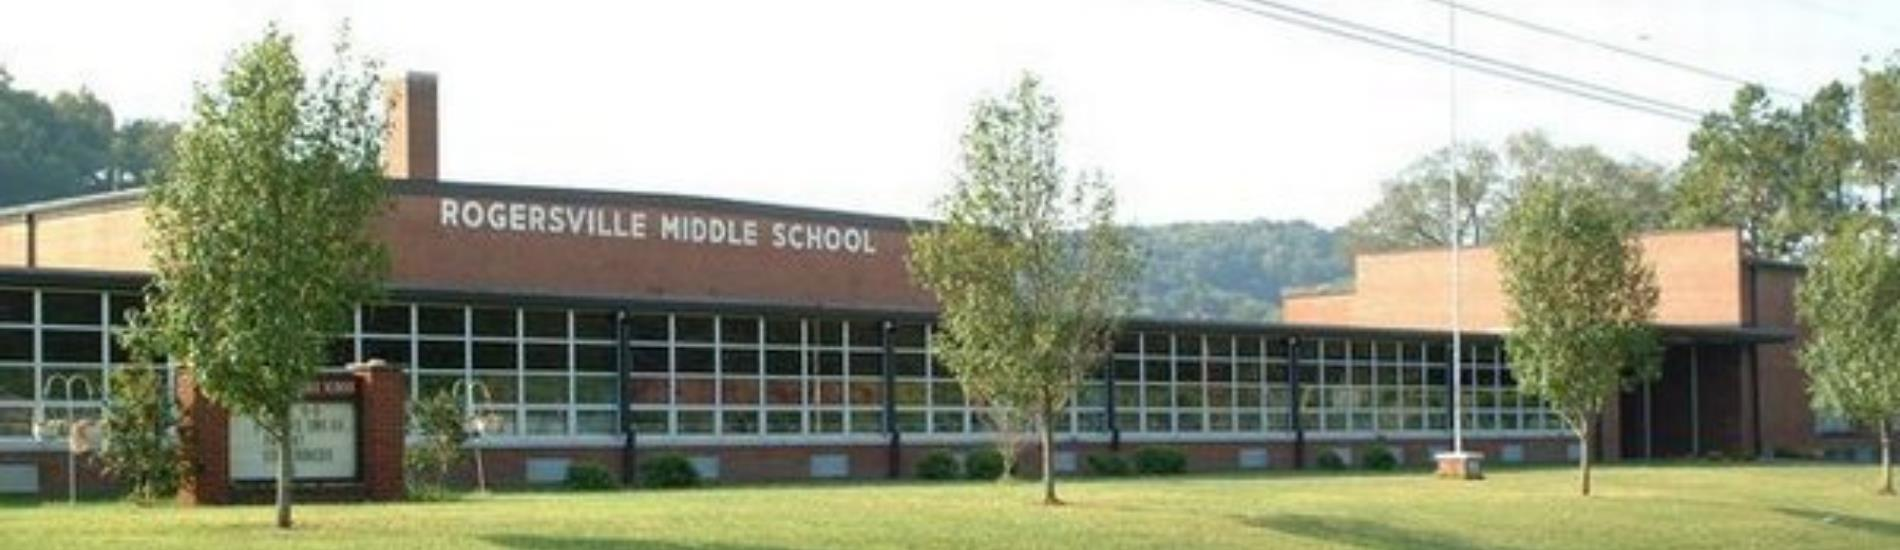 robersville middle school building